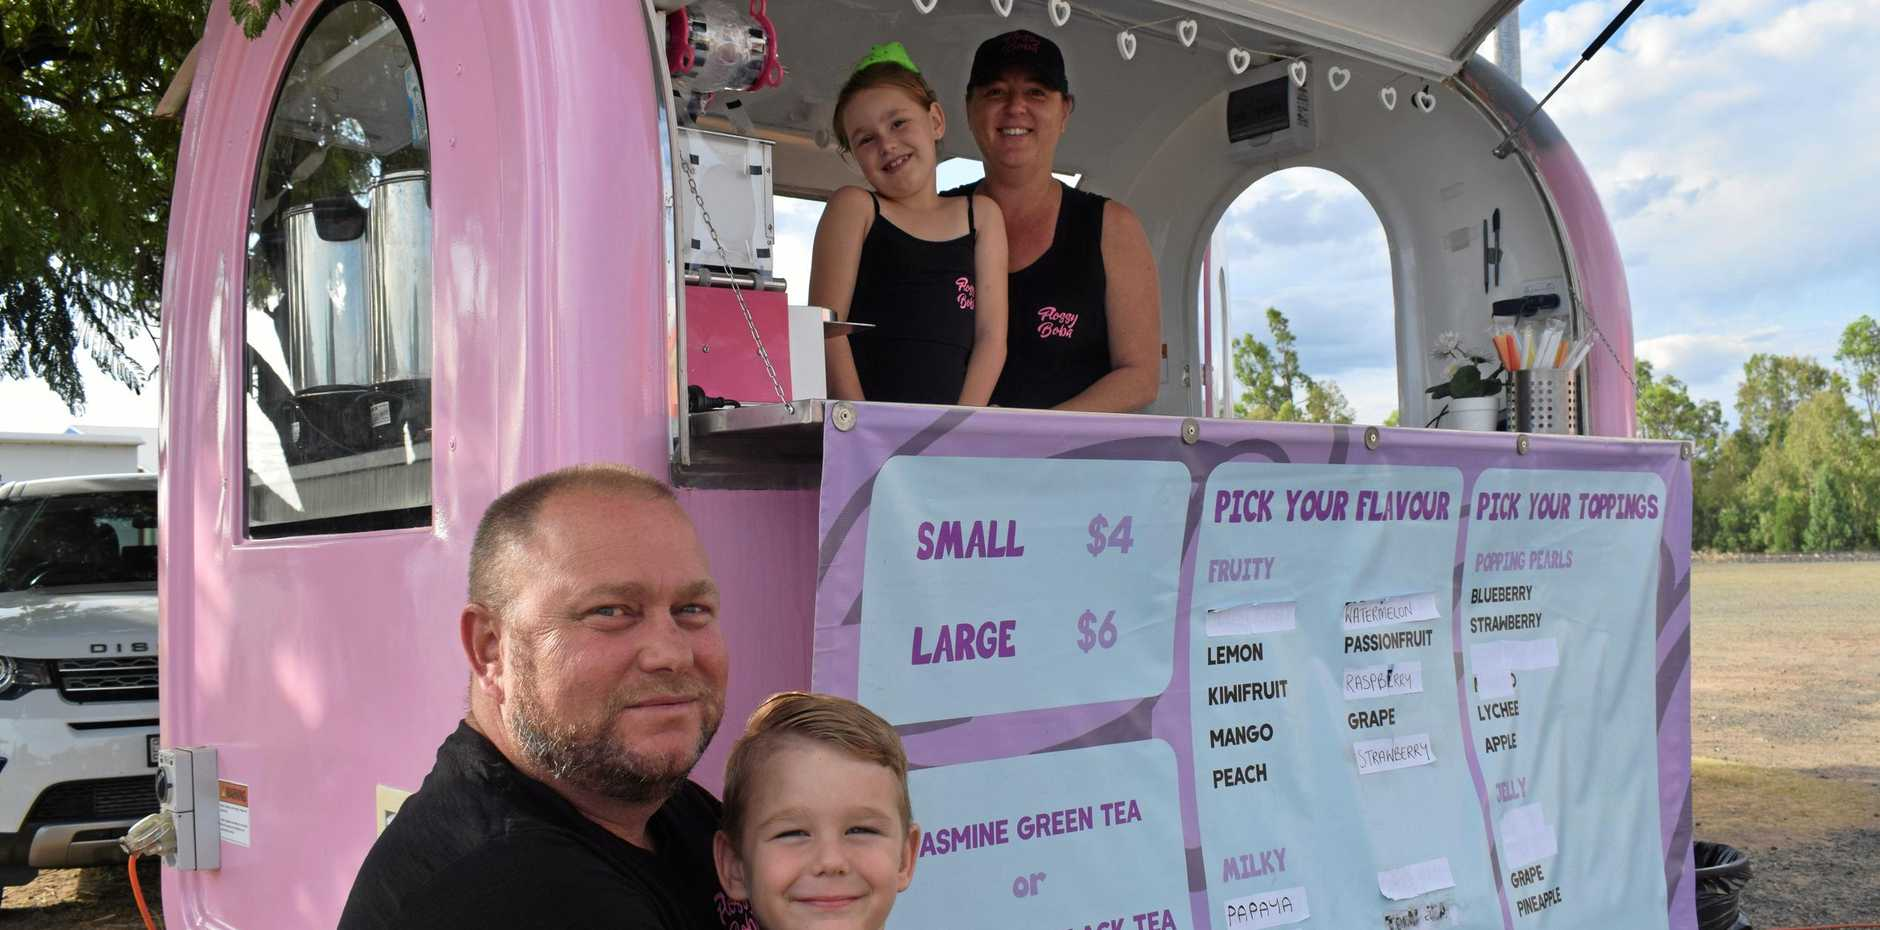 TEA TIME: Jimmy, James, and Arijana Jones, and Annie Simunic are the proud owners of Chinchilla's own bubble tea van - Flossy Boba.